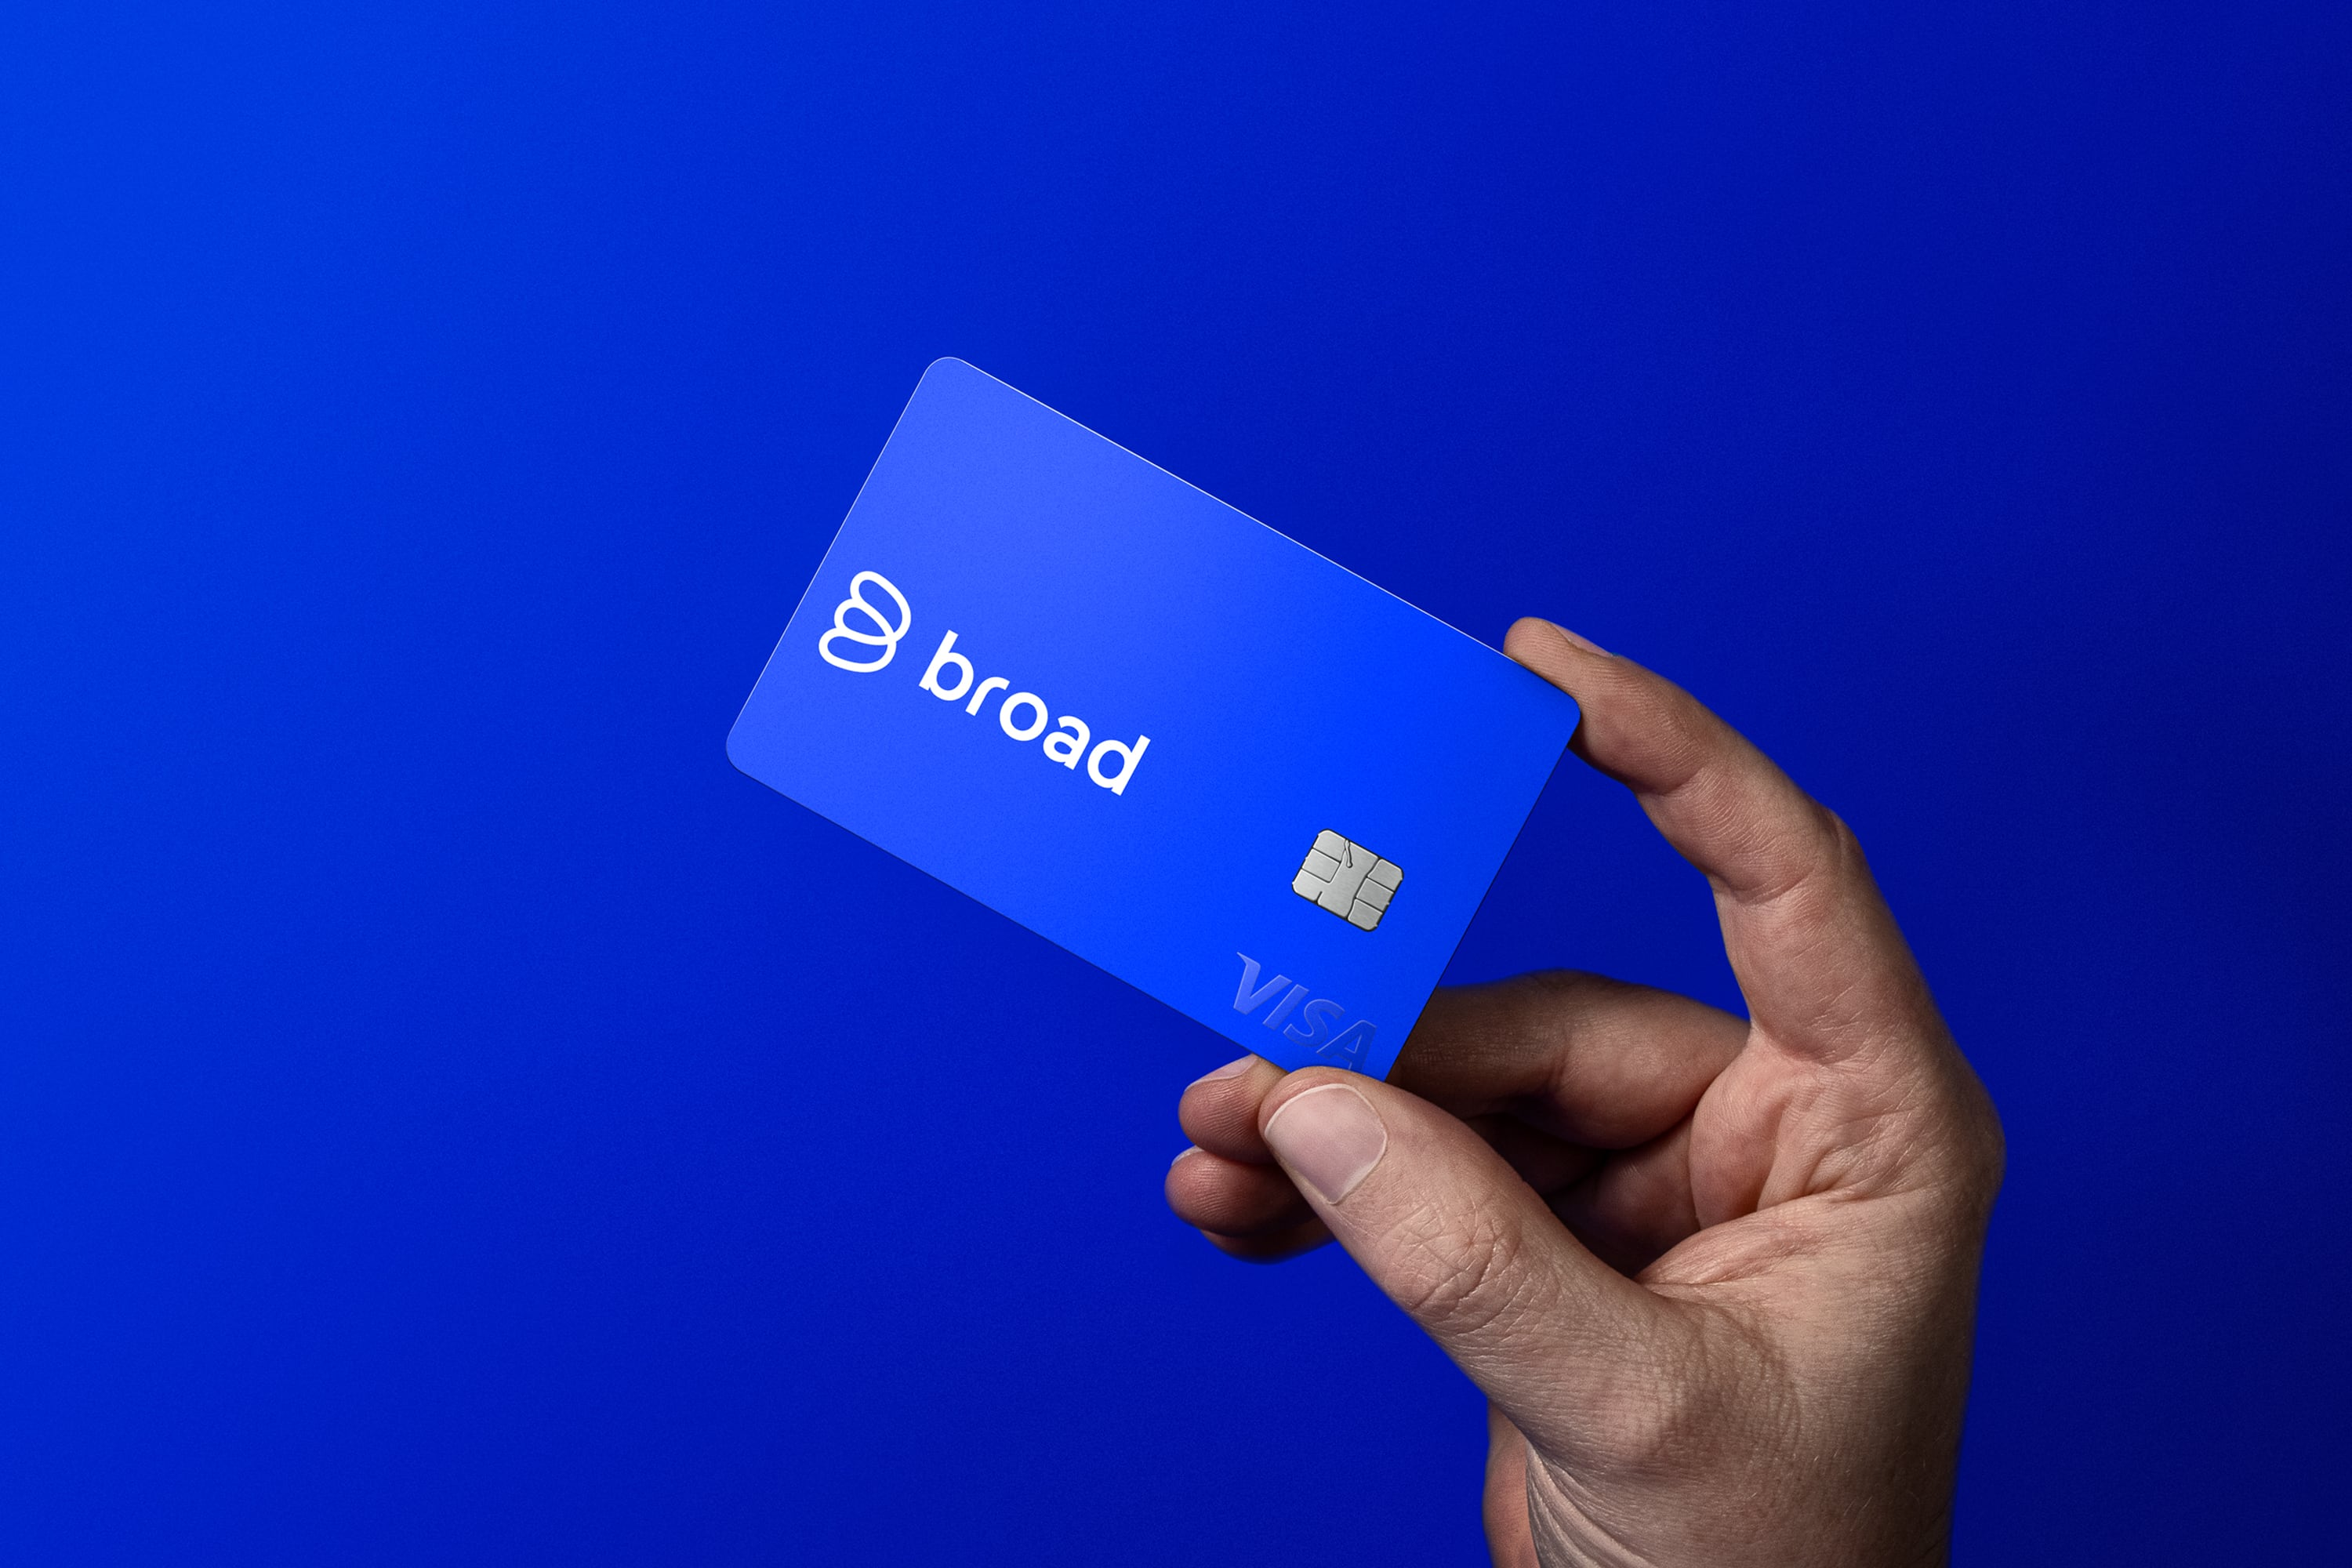 Blond-Industrial-Product-Design-Agency-London-Broad-Branding-Brand-Identity-21